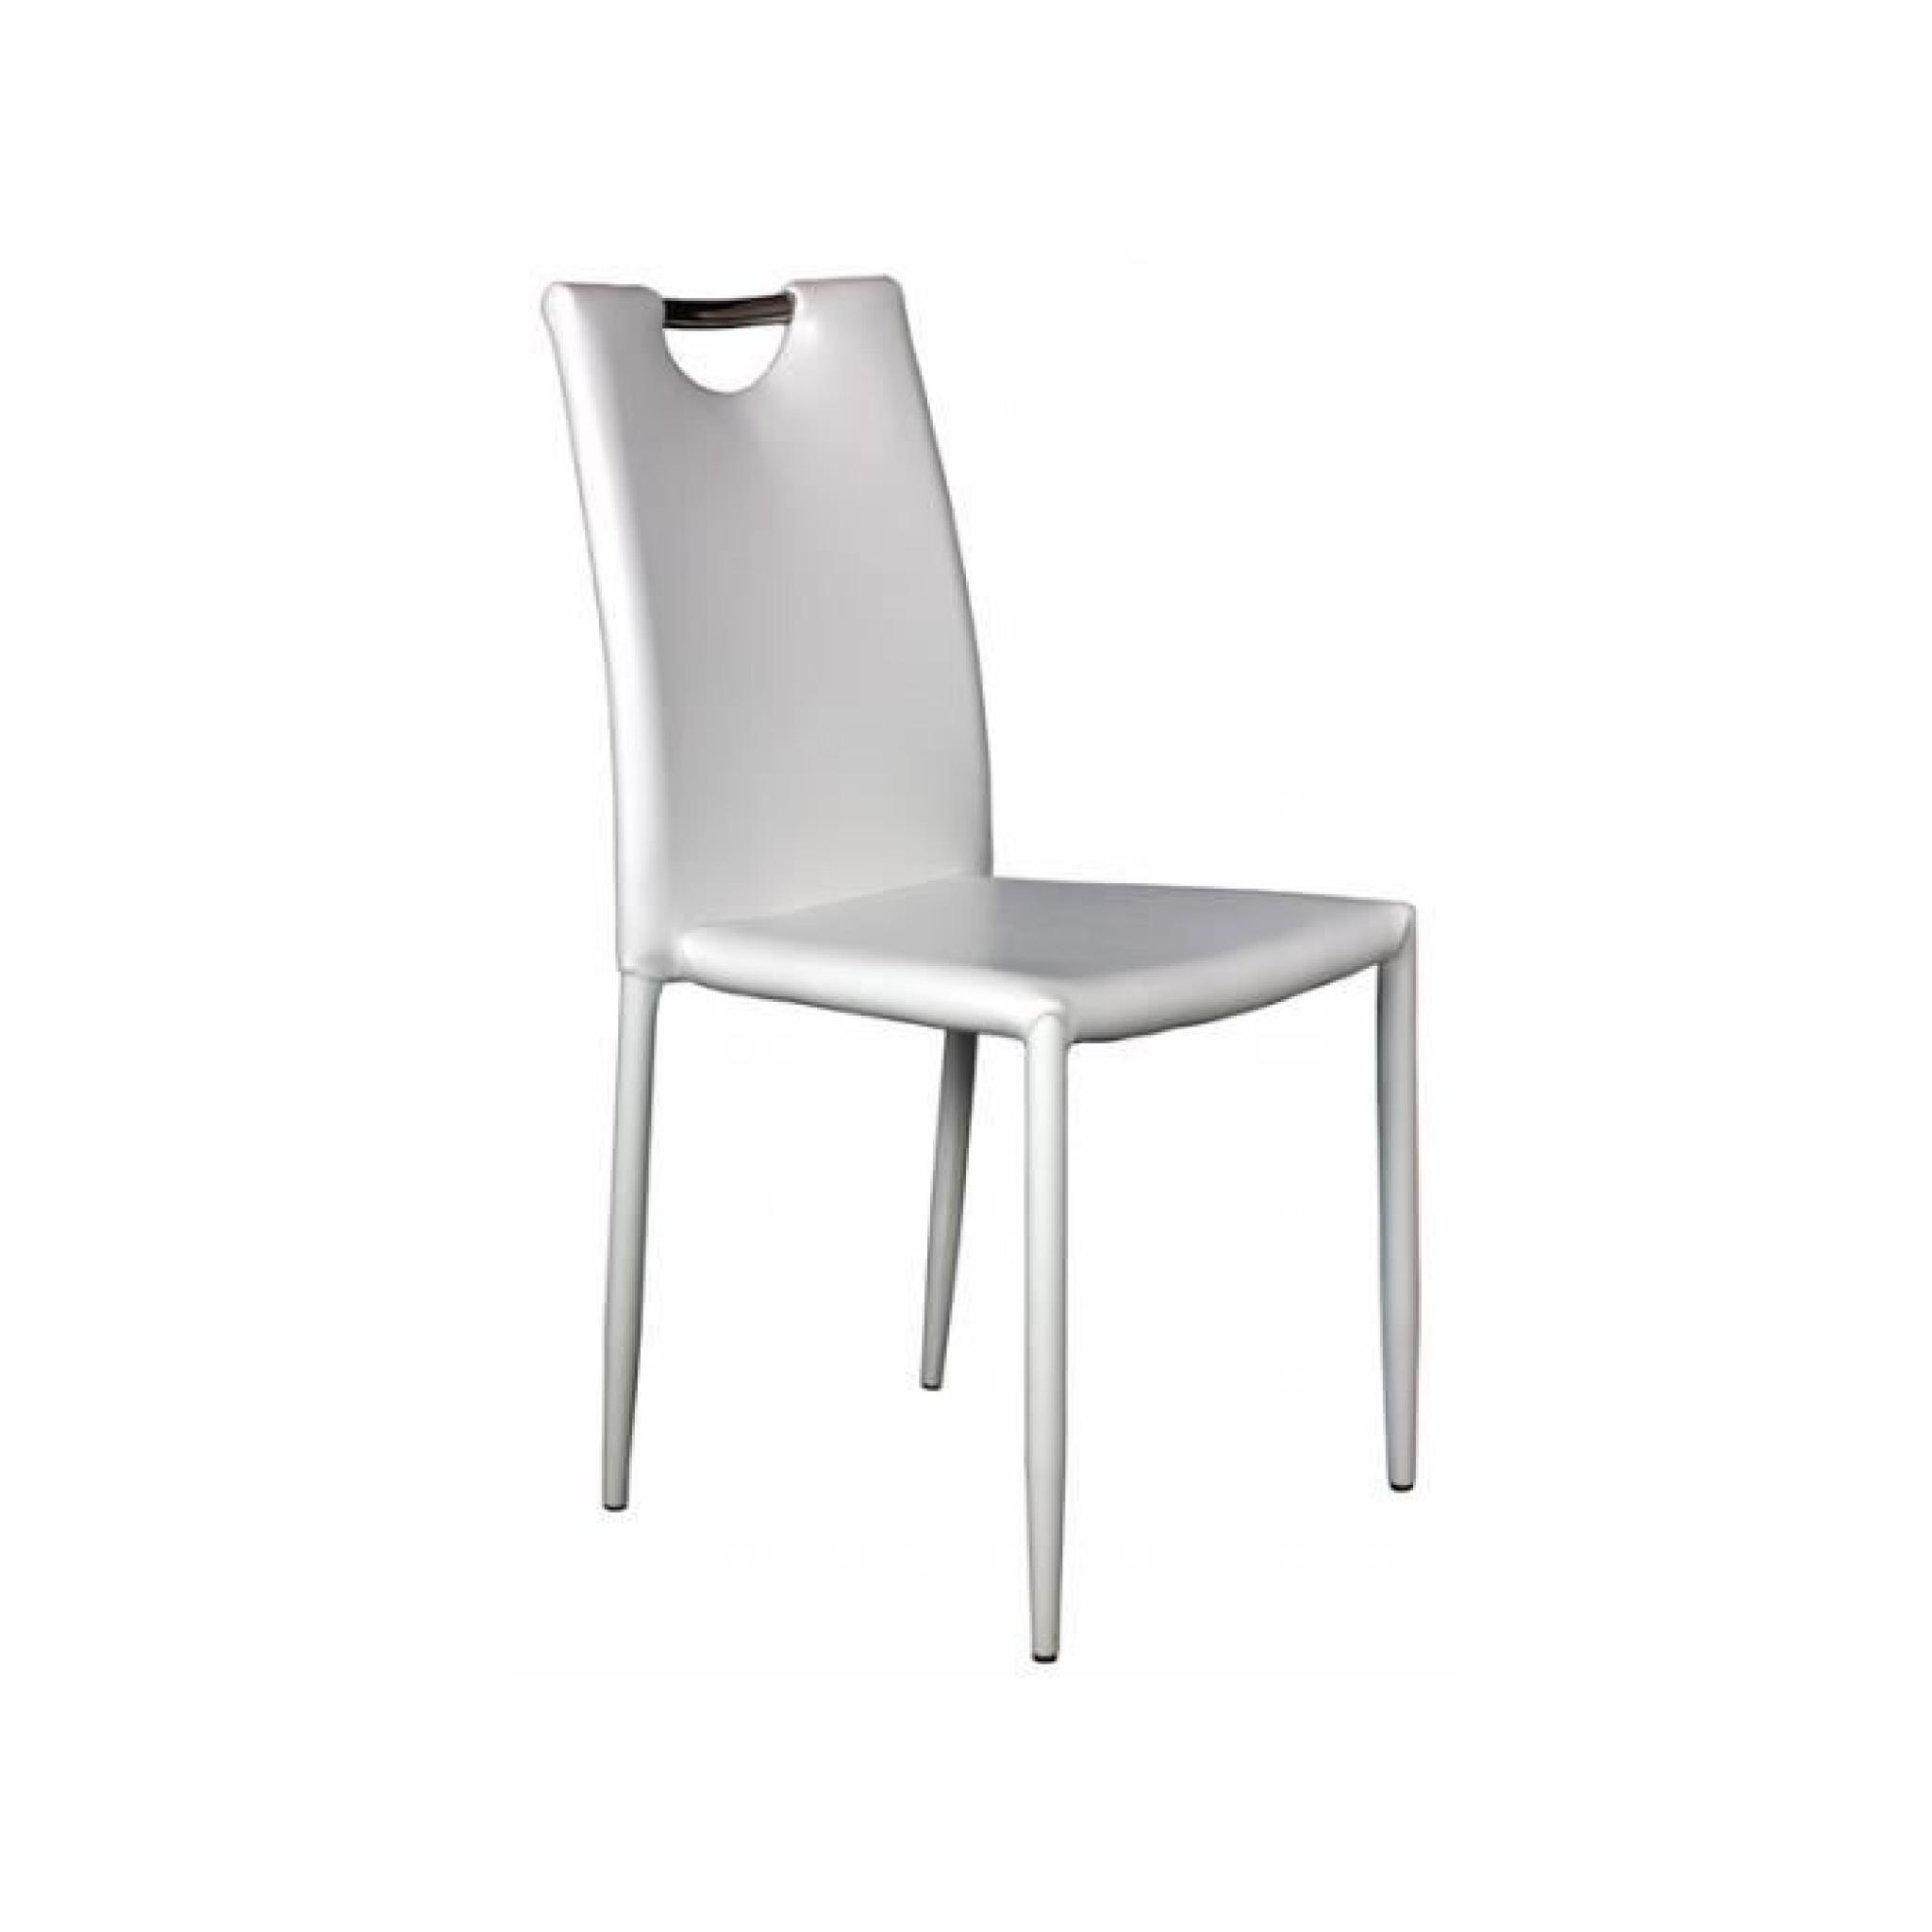 Chaise Blanche Pas Cher Kira Lot 4 Chaises Blanches